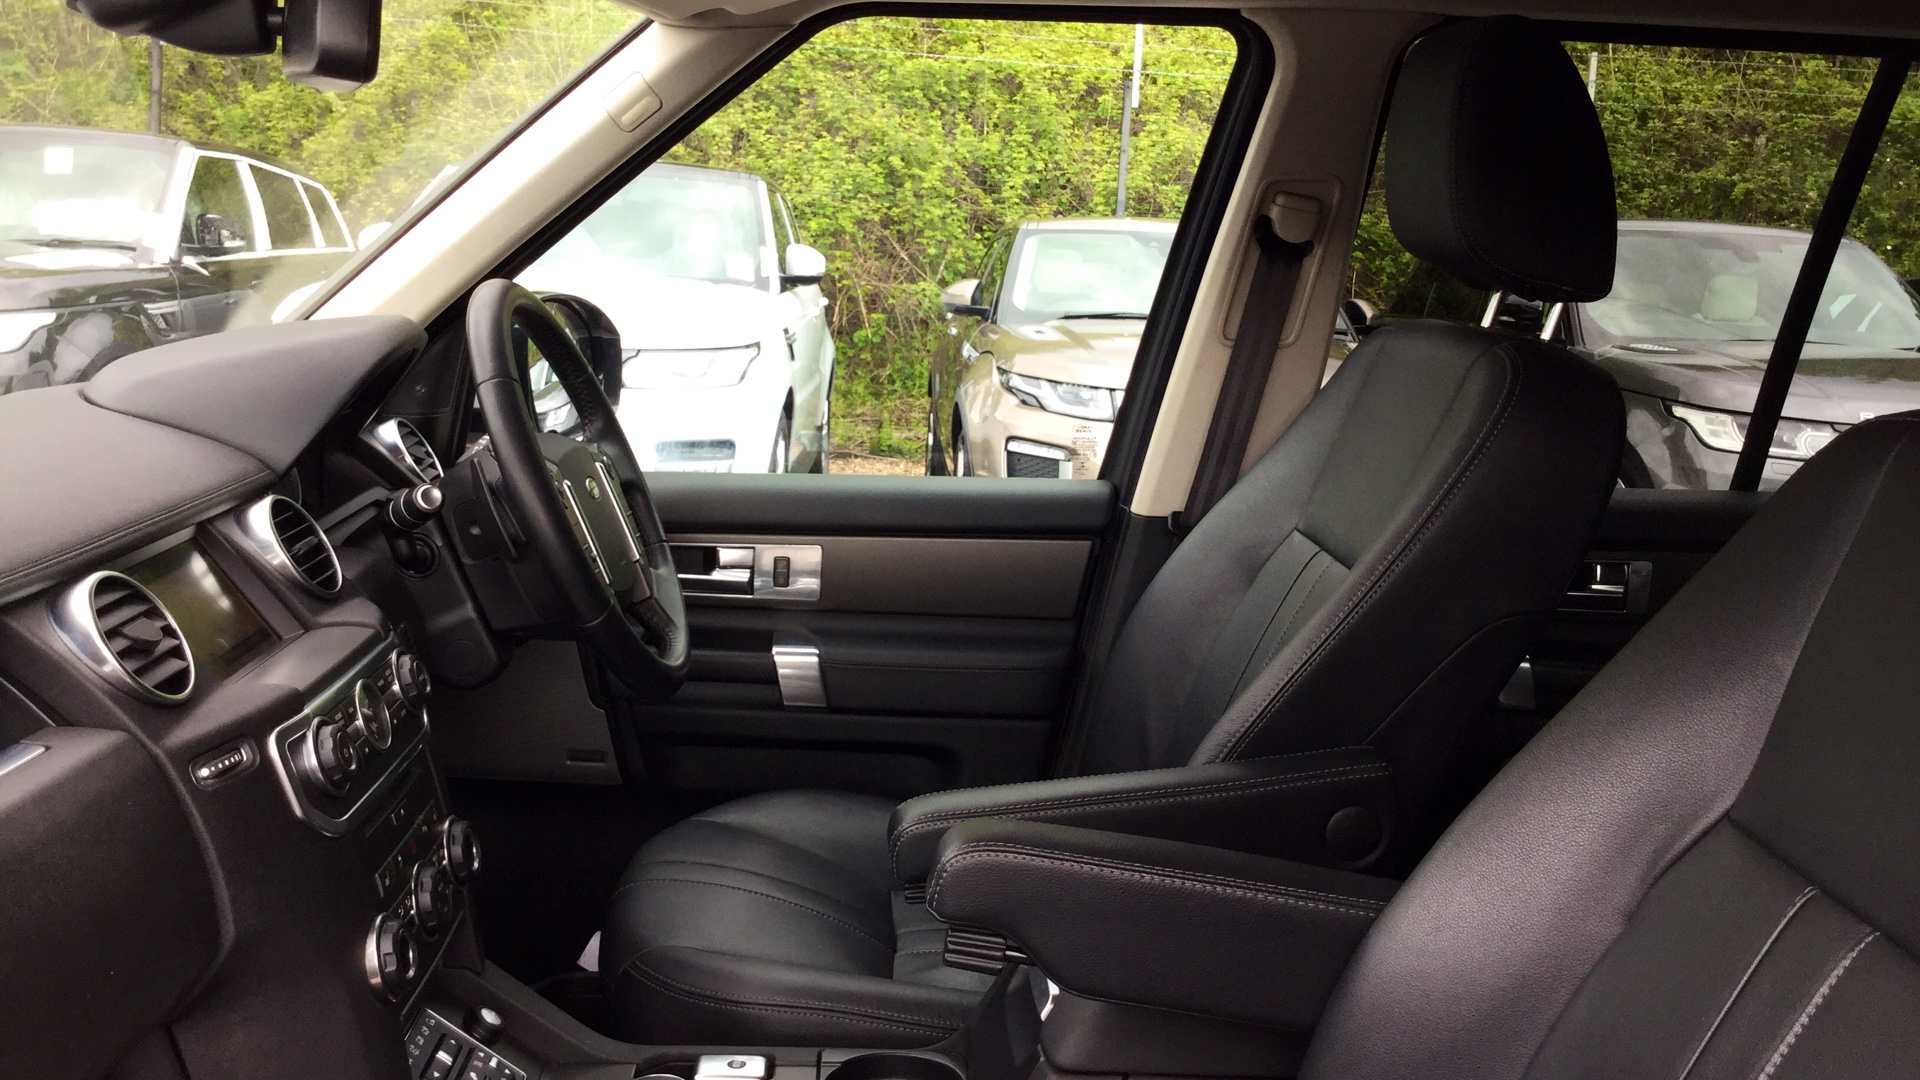 Used Land Rover Discovery Diesel Xs mercial Sd V6 Auto for Sale